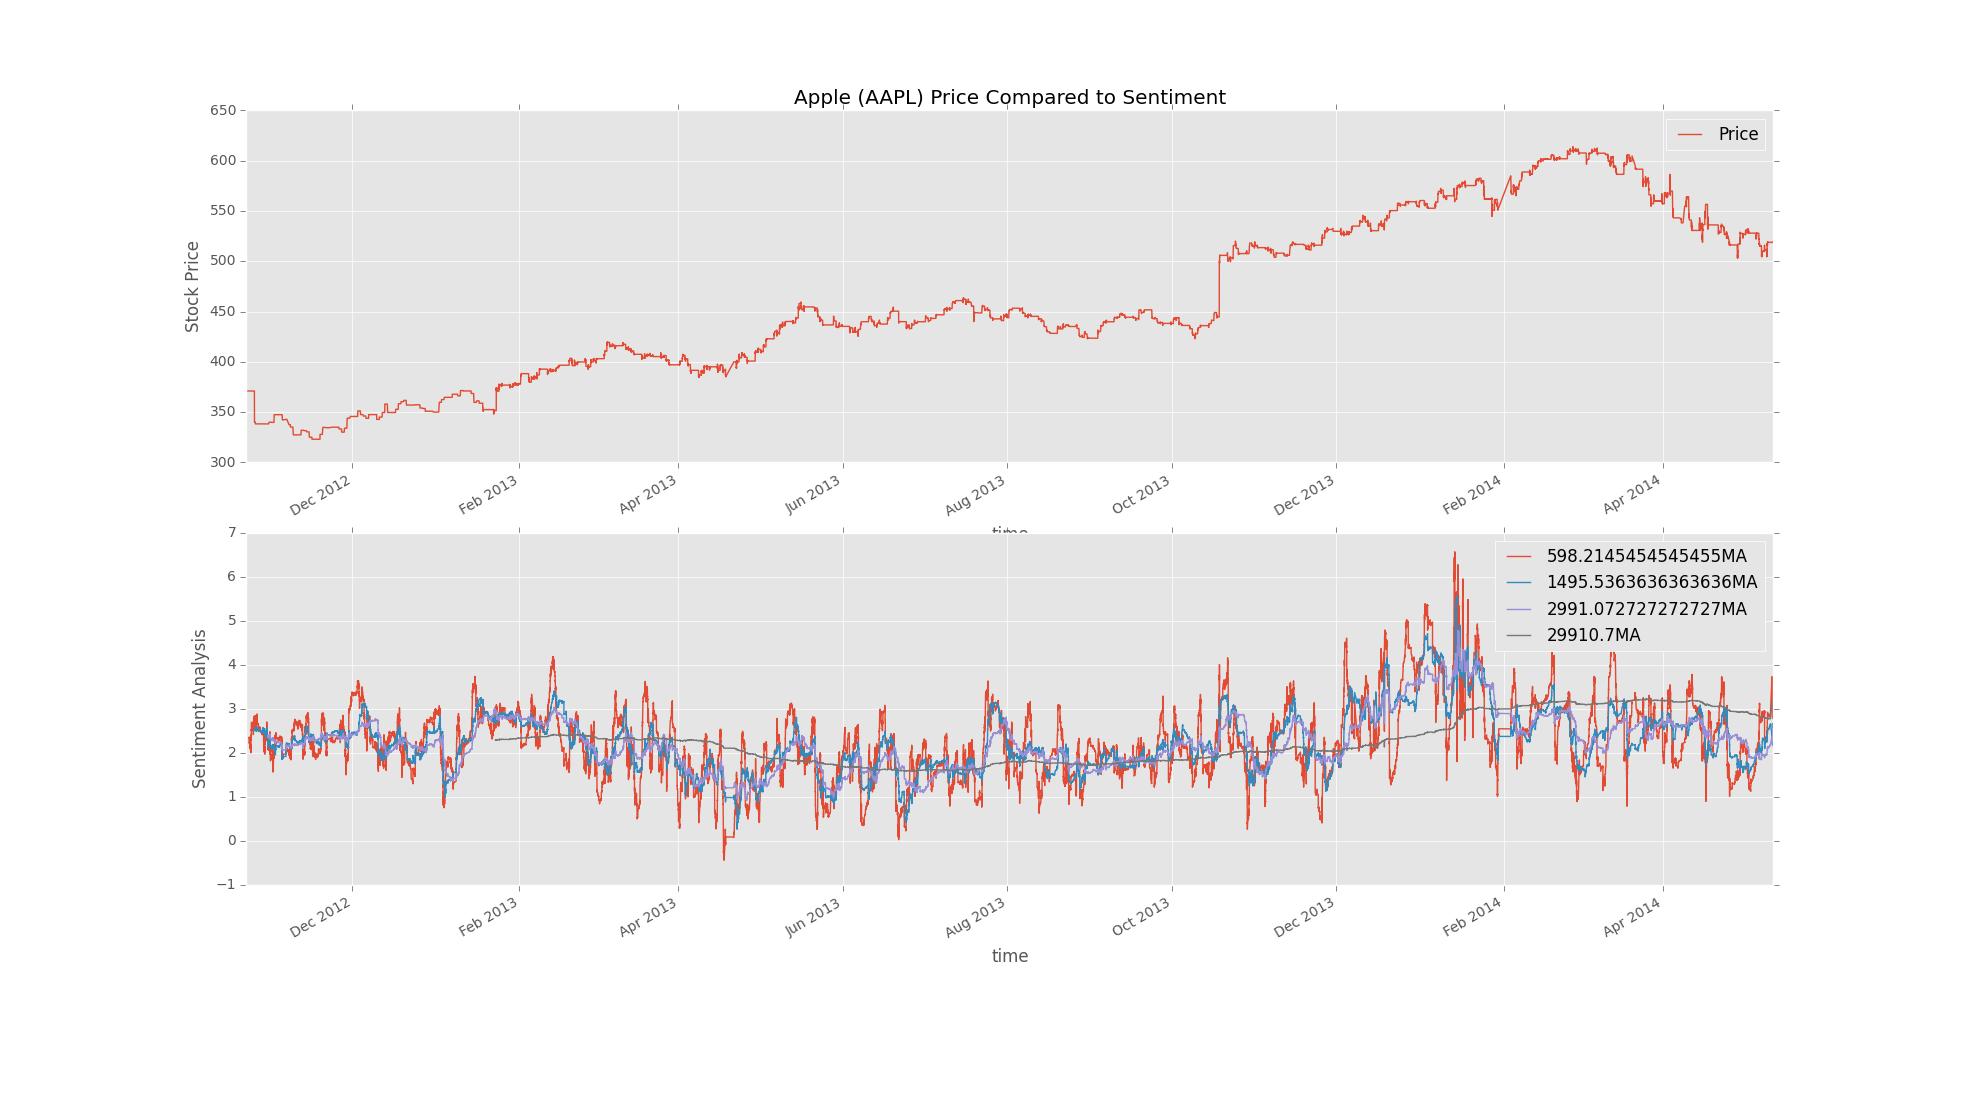 Pandas and Python for investing with sentiment